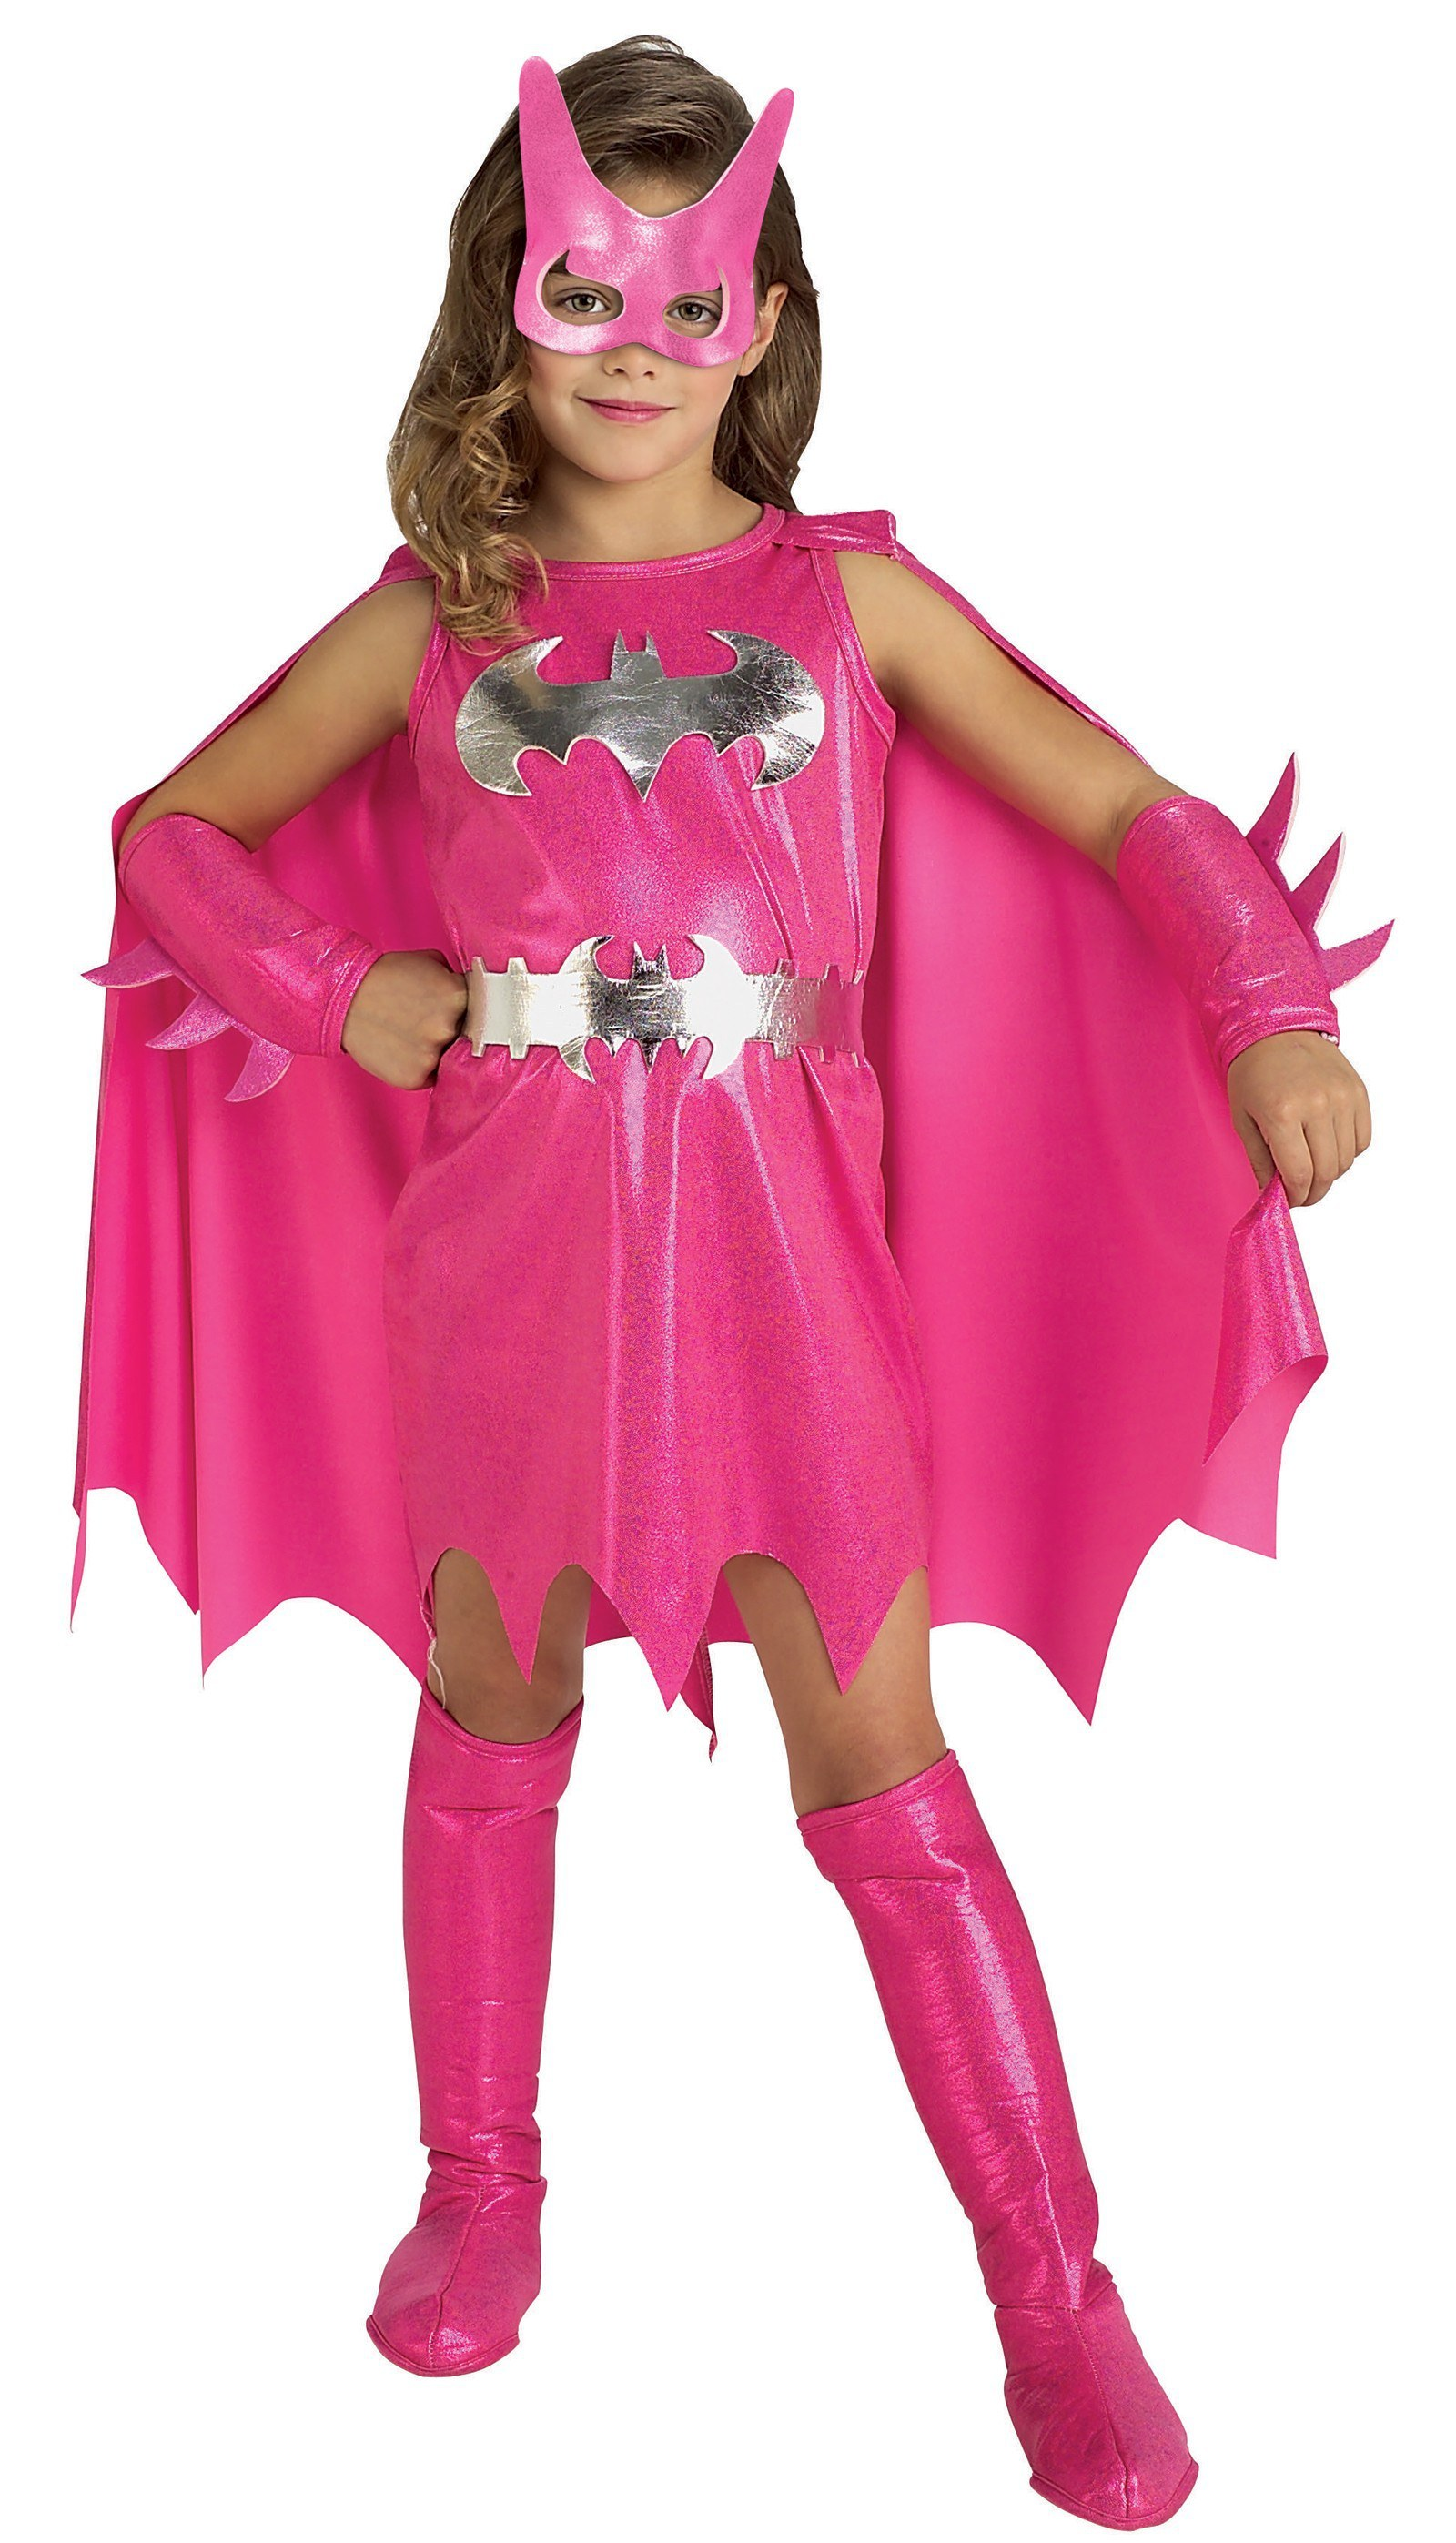 pink batgirl costume  sc 1 st  The Costume Shop & Costumes for Kids - Irelands Biggest Range of Childrens Costumes